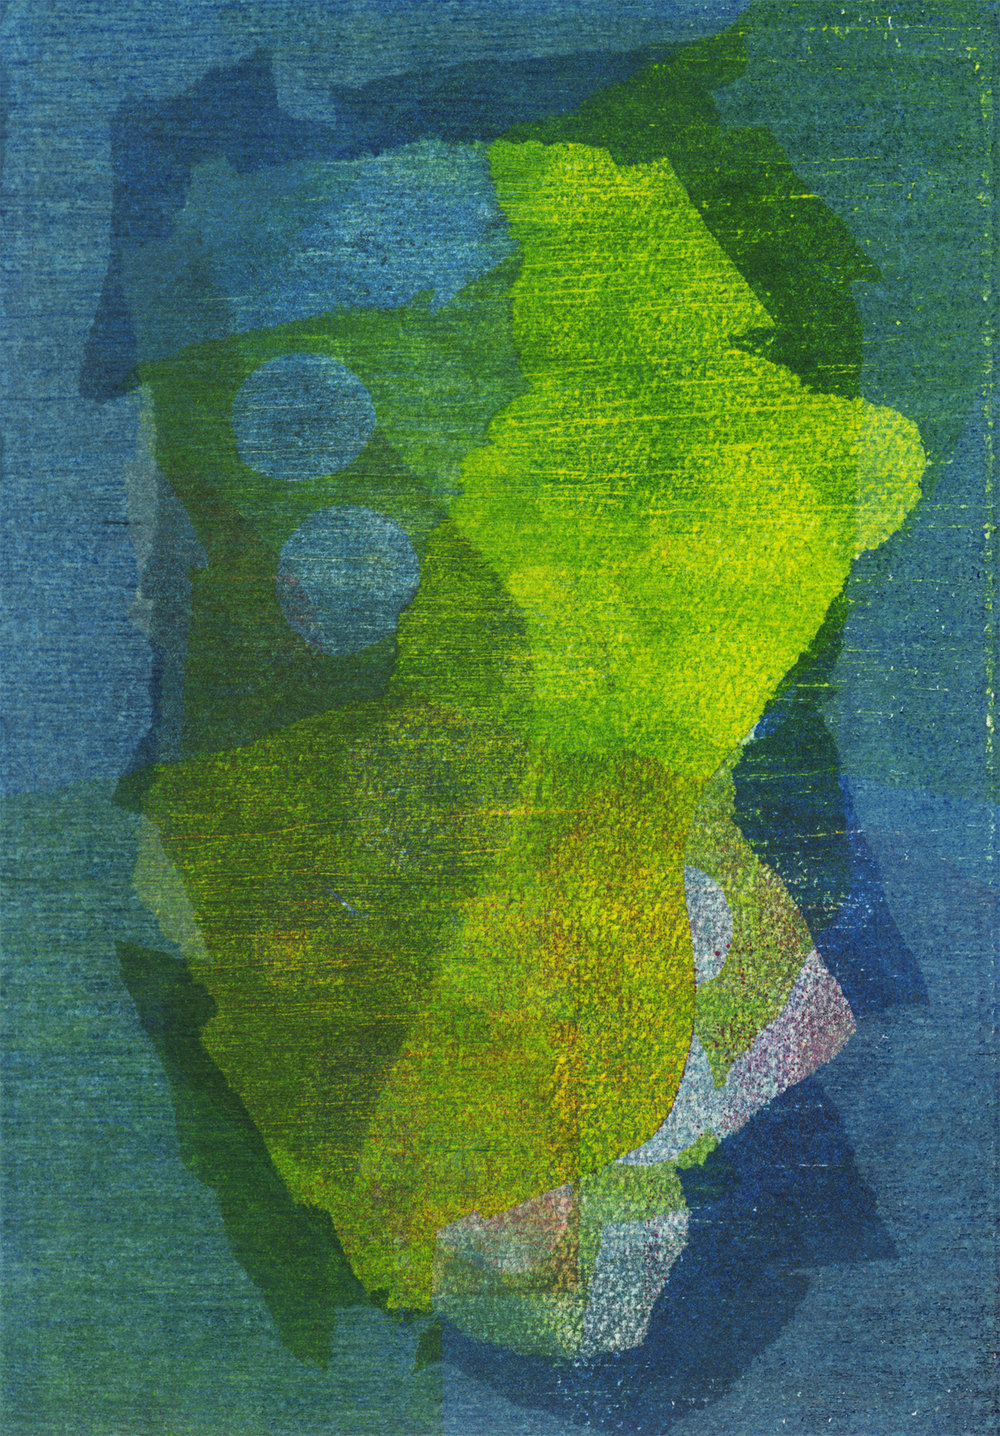 Another Green World , 2018, Monotype on watercolor paper, 10.5 x 7.5 inches; 27 x 19 centimeters, Edition of 1